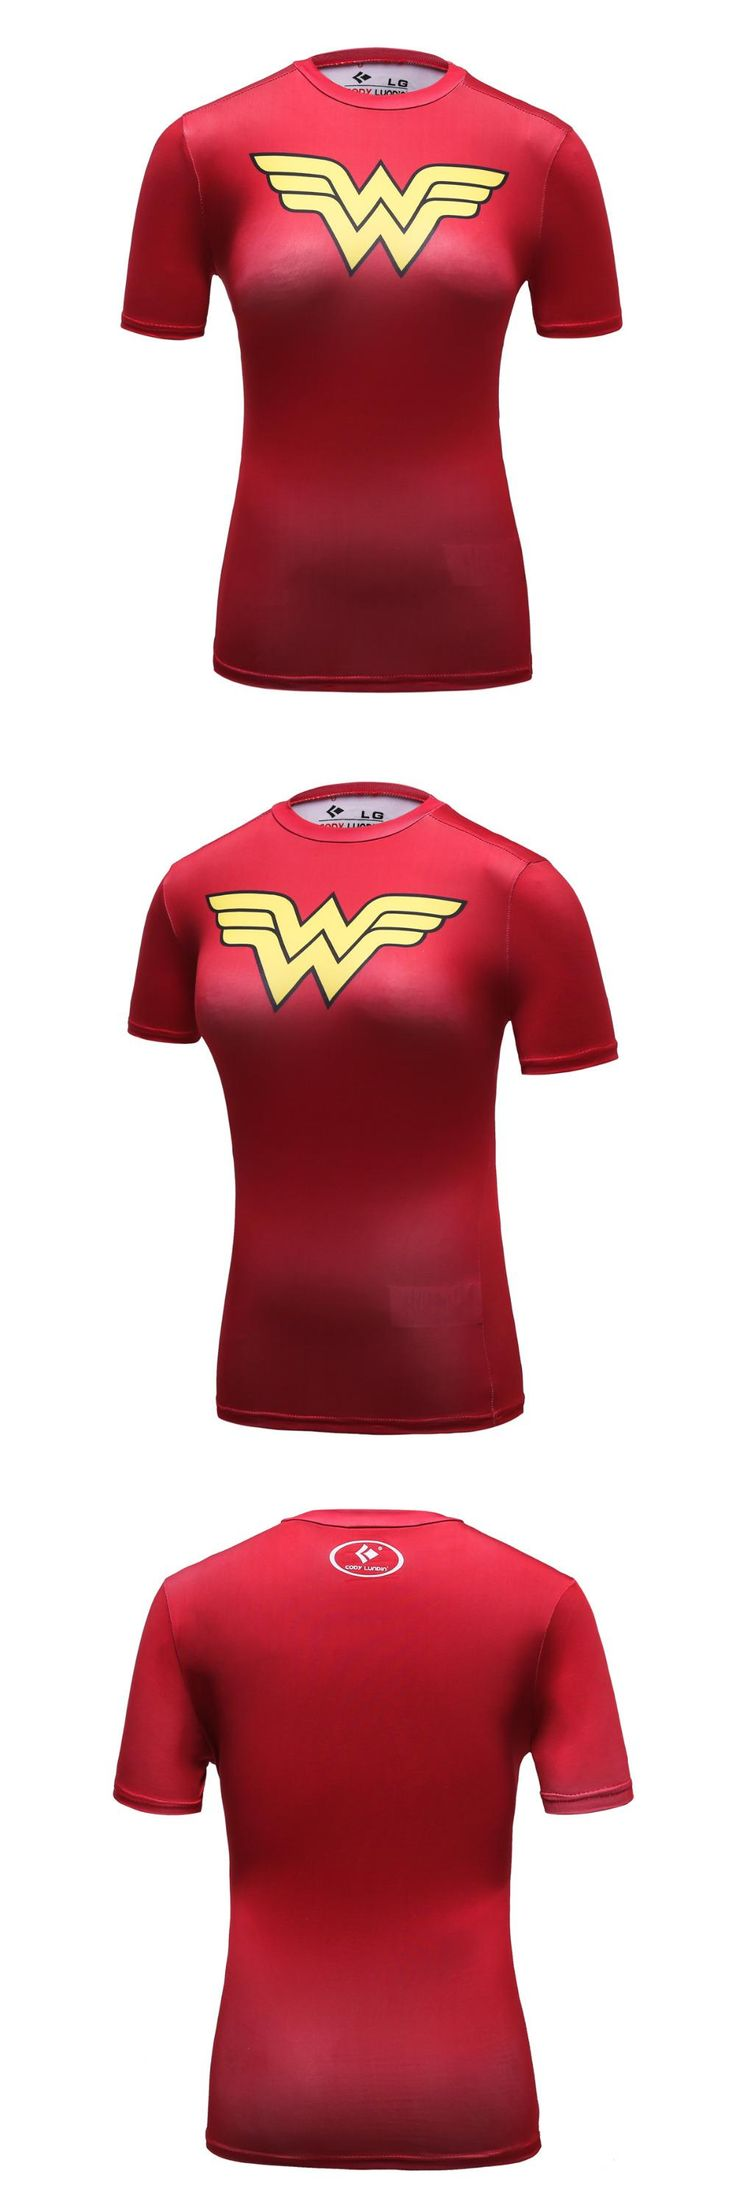 [Visit to Buy] New Arrival Cool Style DC Comics Superhero Wonder Women T Shirts 3D Printed Bodybuilding Brand T-shirt Ladies Compression Tops #Advertisement